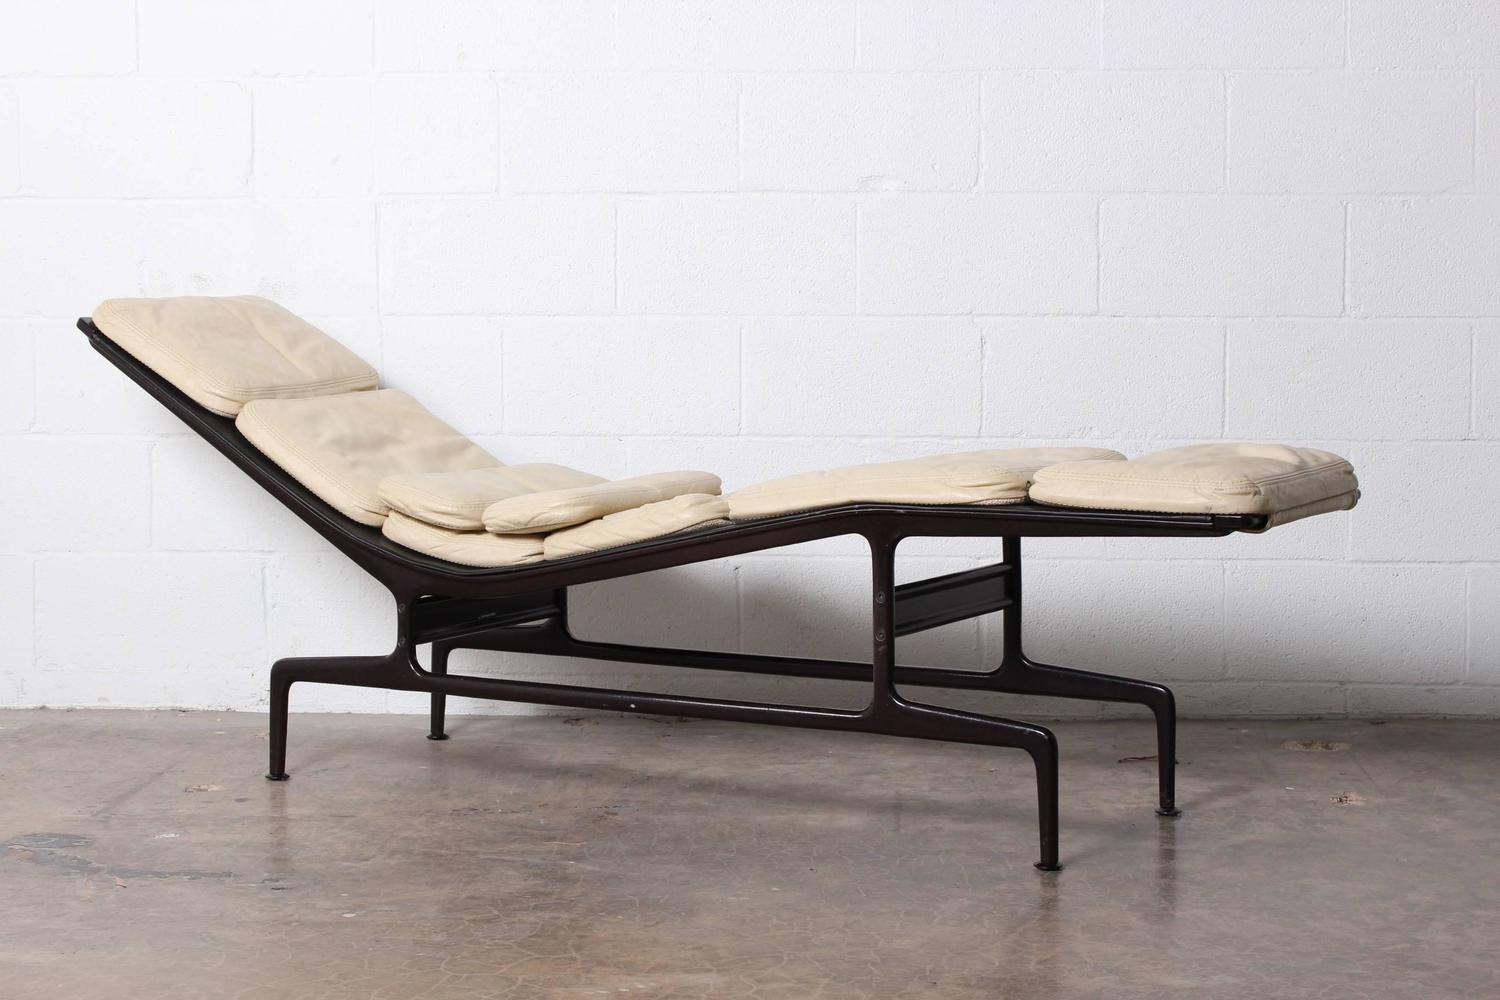 Custom Billy Wilder Chaise by Charles Eames For Sale at